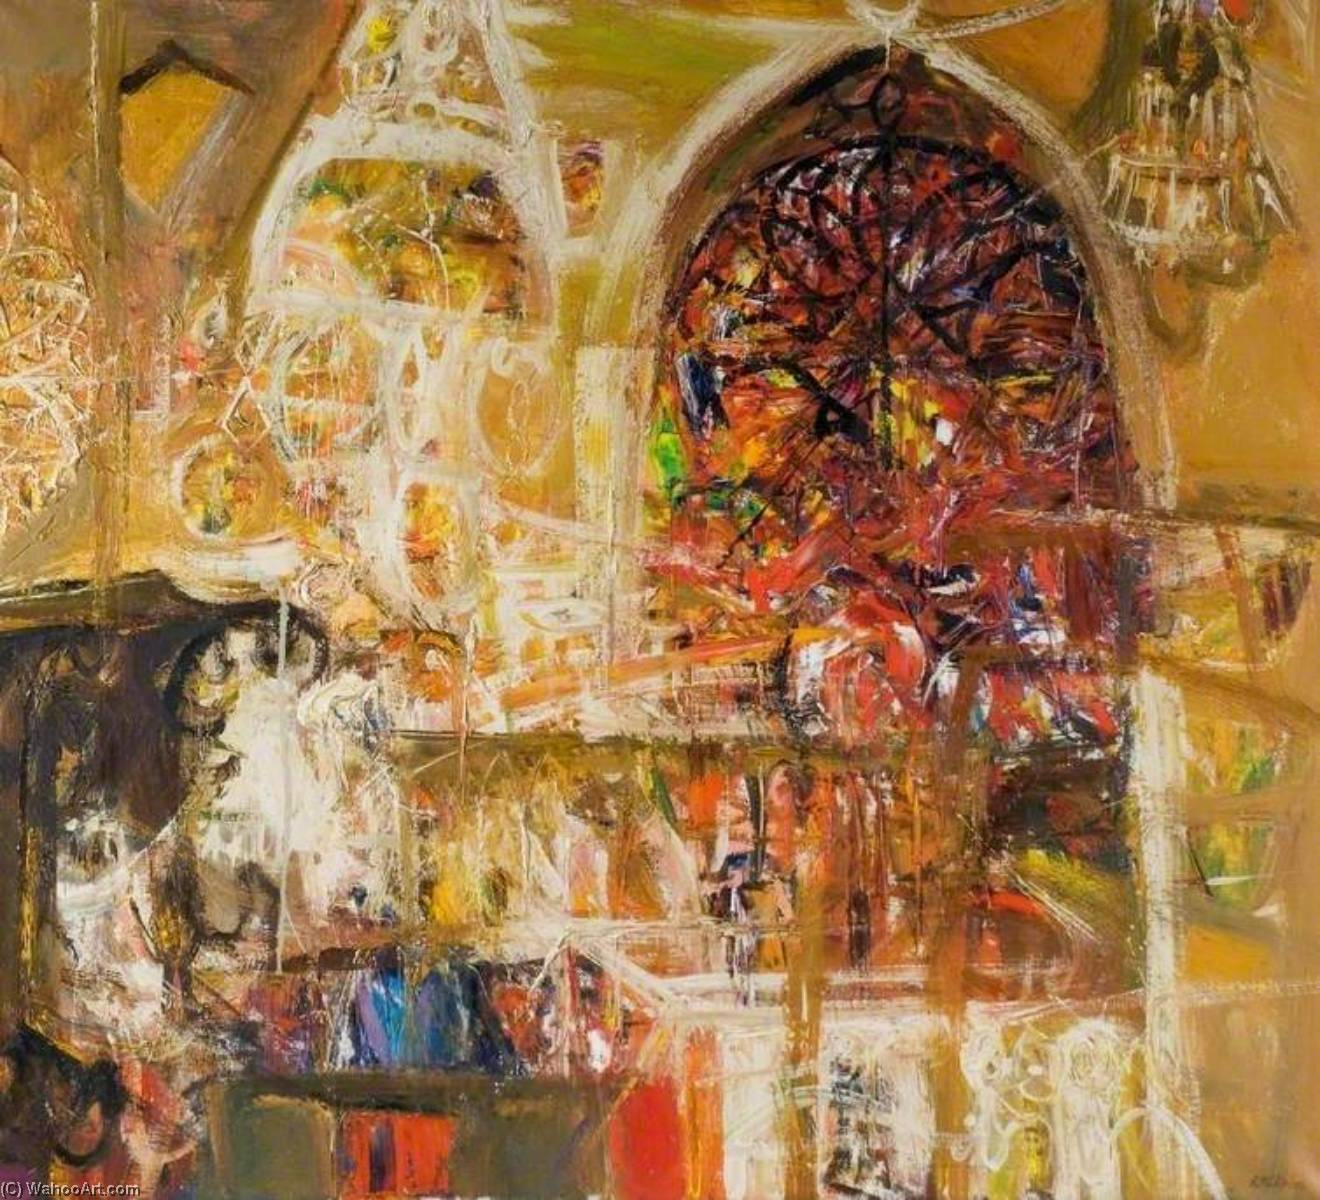 Church Interior with Chandeliers by Robin Philipson | WahooArt.com